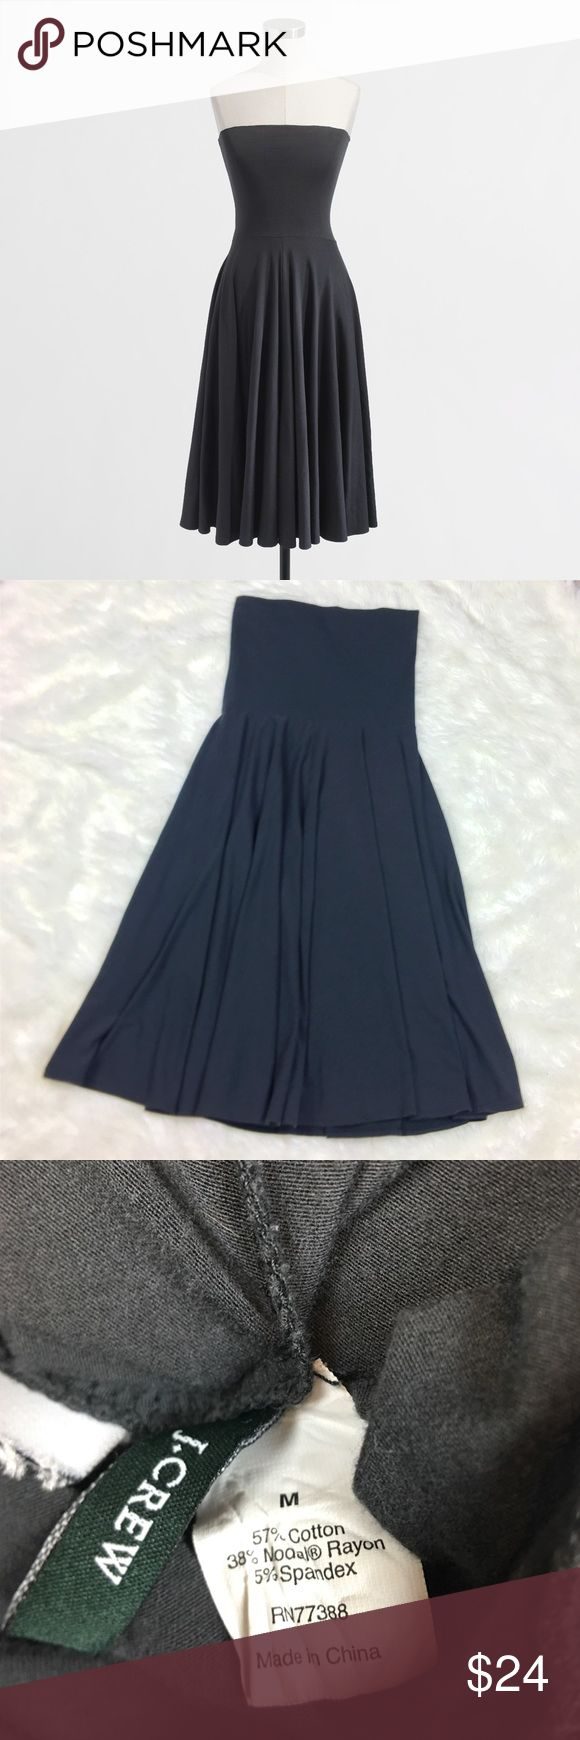 """J. Crew Gray Senur Sun Dress Maxi Fold Over Small Excellent condition J. Crew Senur Dress in dark charcoal gray. So soft & Stretchy! Sold out online. Style 91099. Cotton / modal / spandex fabric blend! This dress can also be made into a maxi skirt by folding the top down. Would also make an amazing maternity skirt! Can dress it up with a belt or down. Size Medium. Measurements: bust 27"""", length  33.5"""". Casual & cool! J. Crew Dresses Midi"""